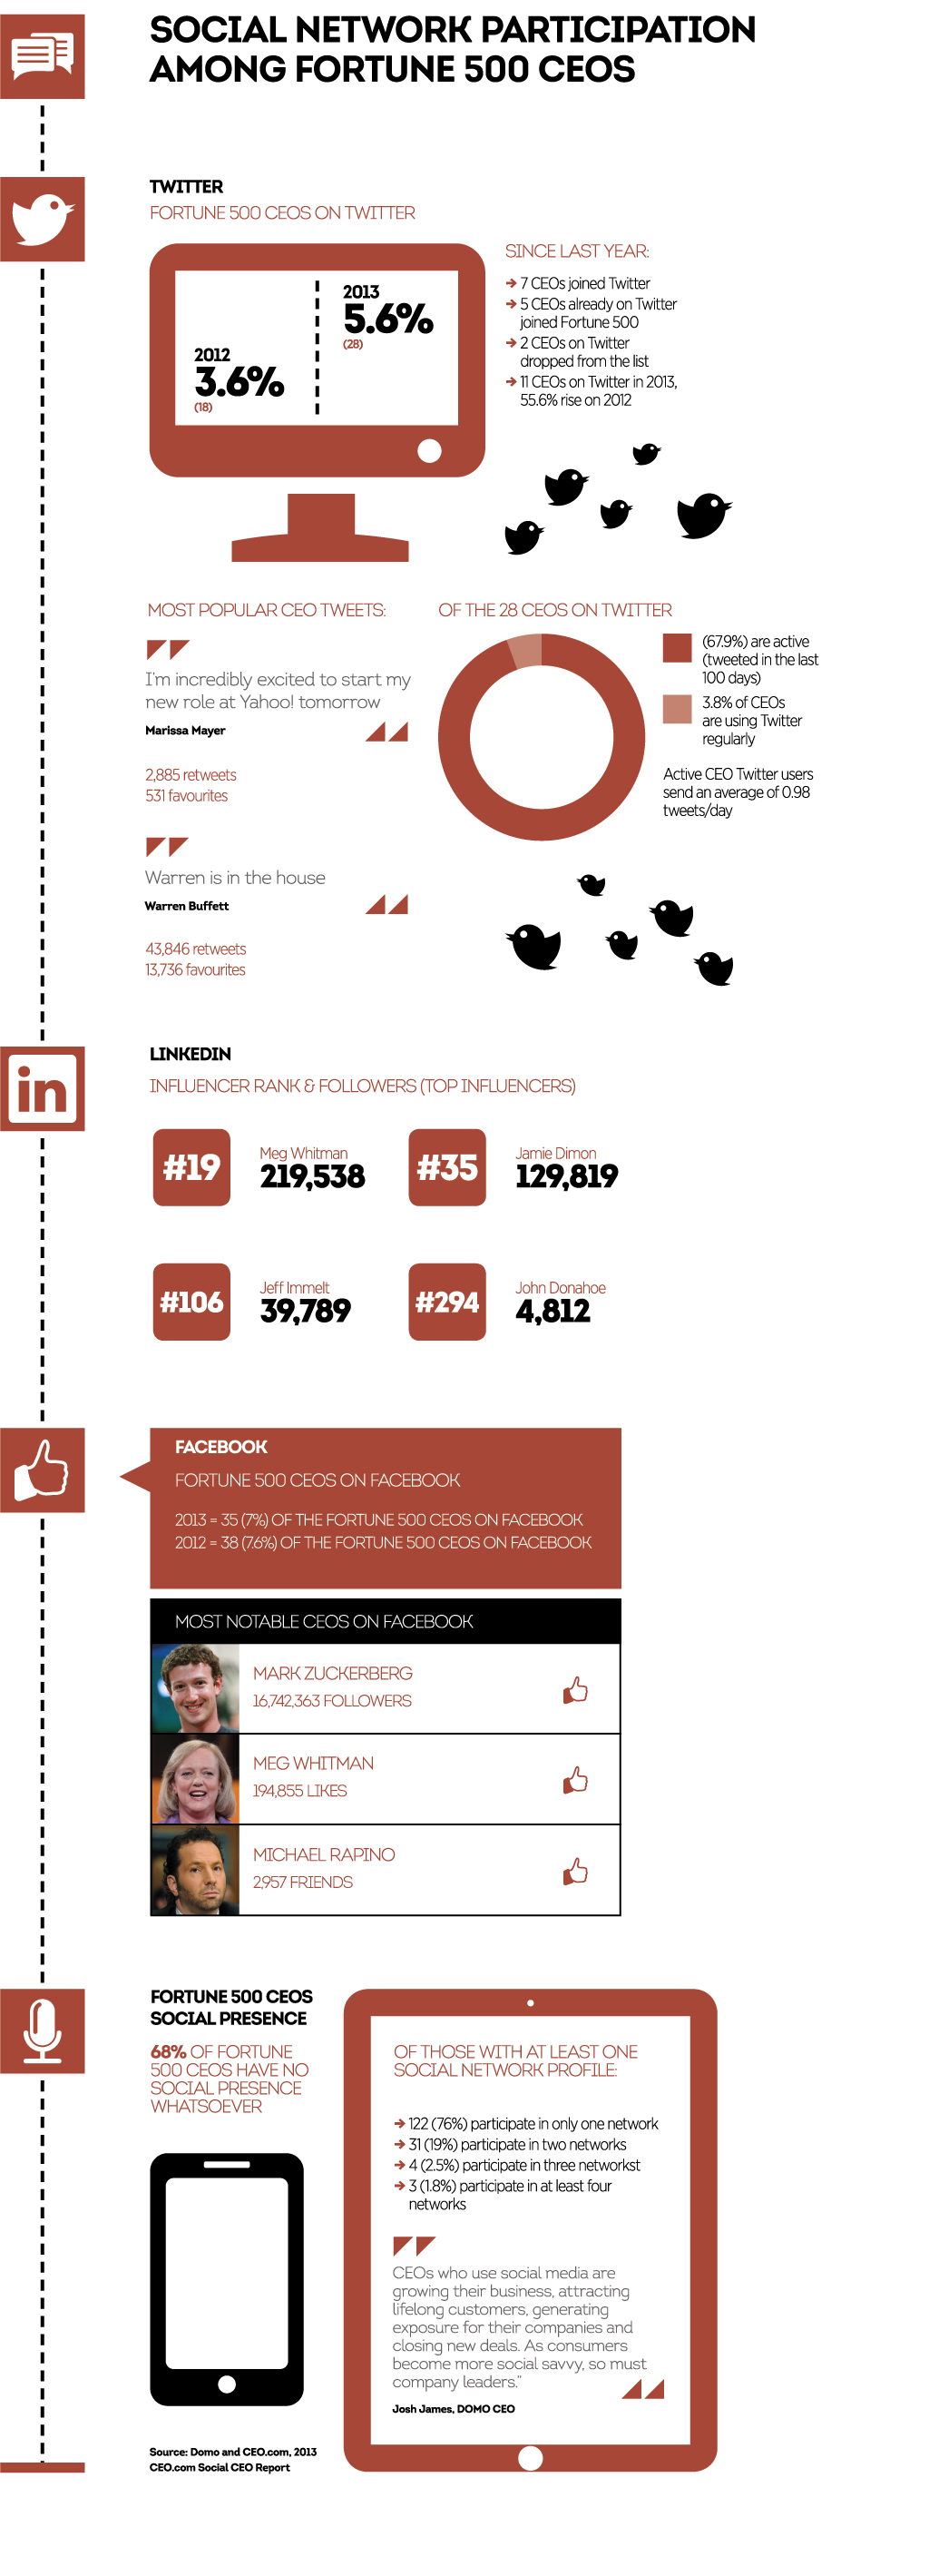 Social-network-participation-among-Fortune-500-CEOs